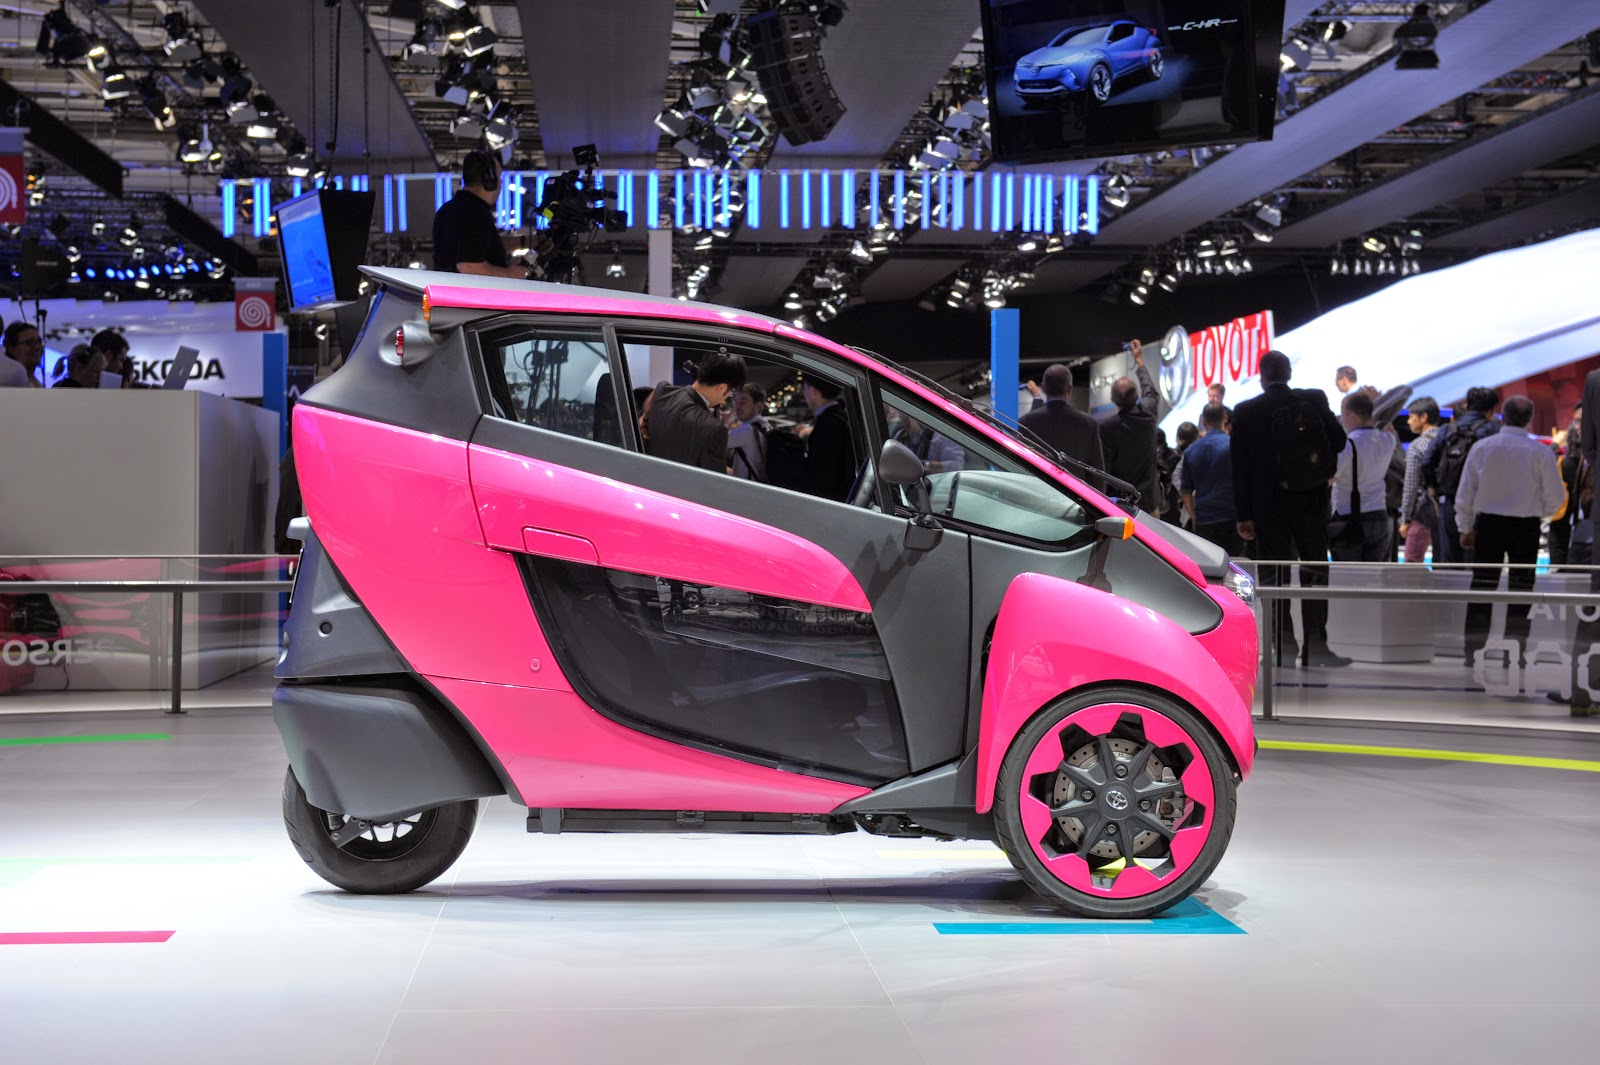 Paris Auto Show 2014 in HD Pictures